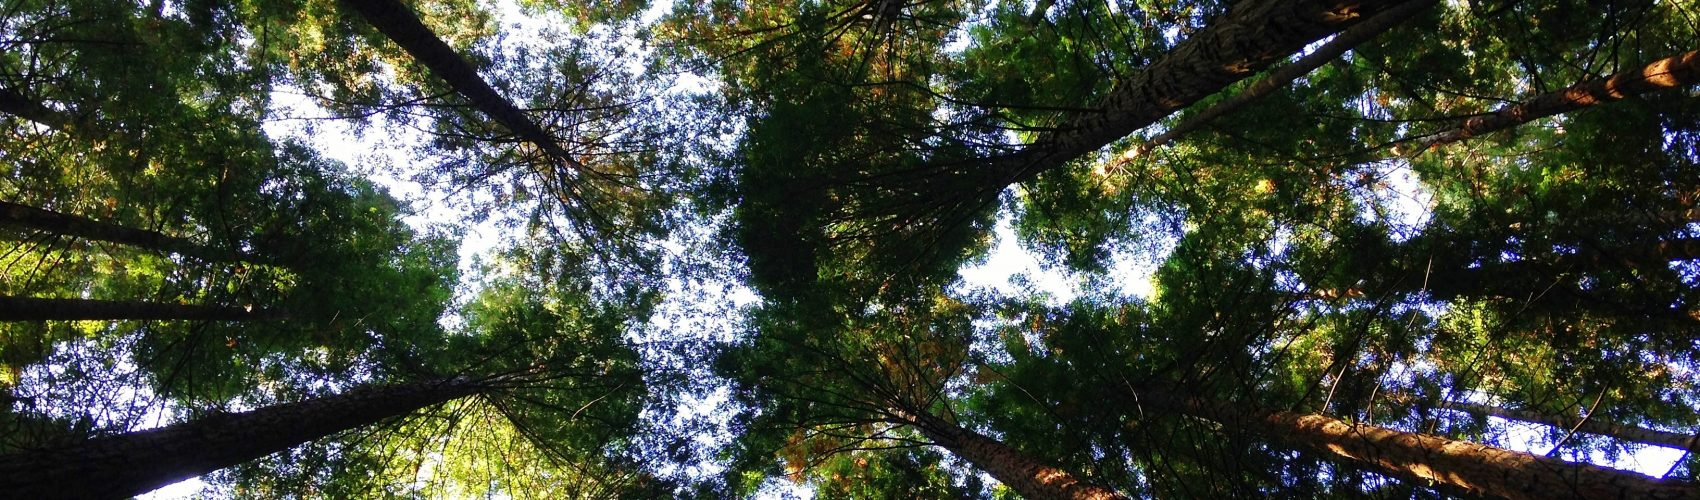 Chief Growth Officer blog hero image_view of trees from the ground up